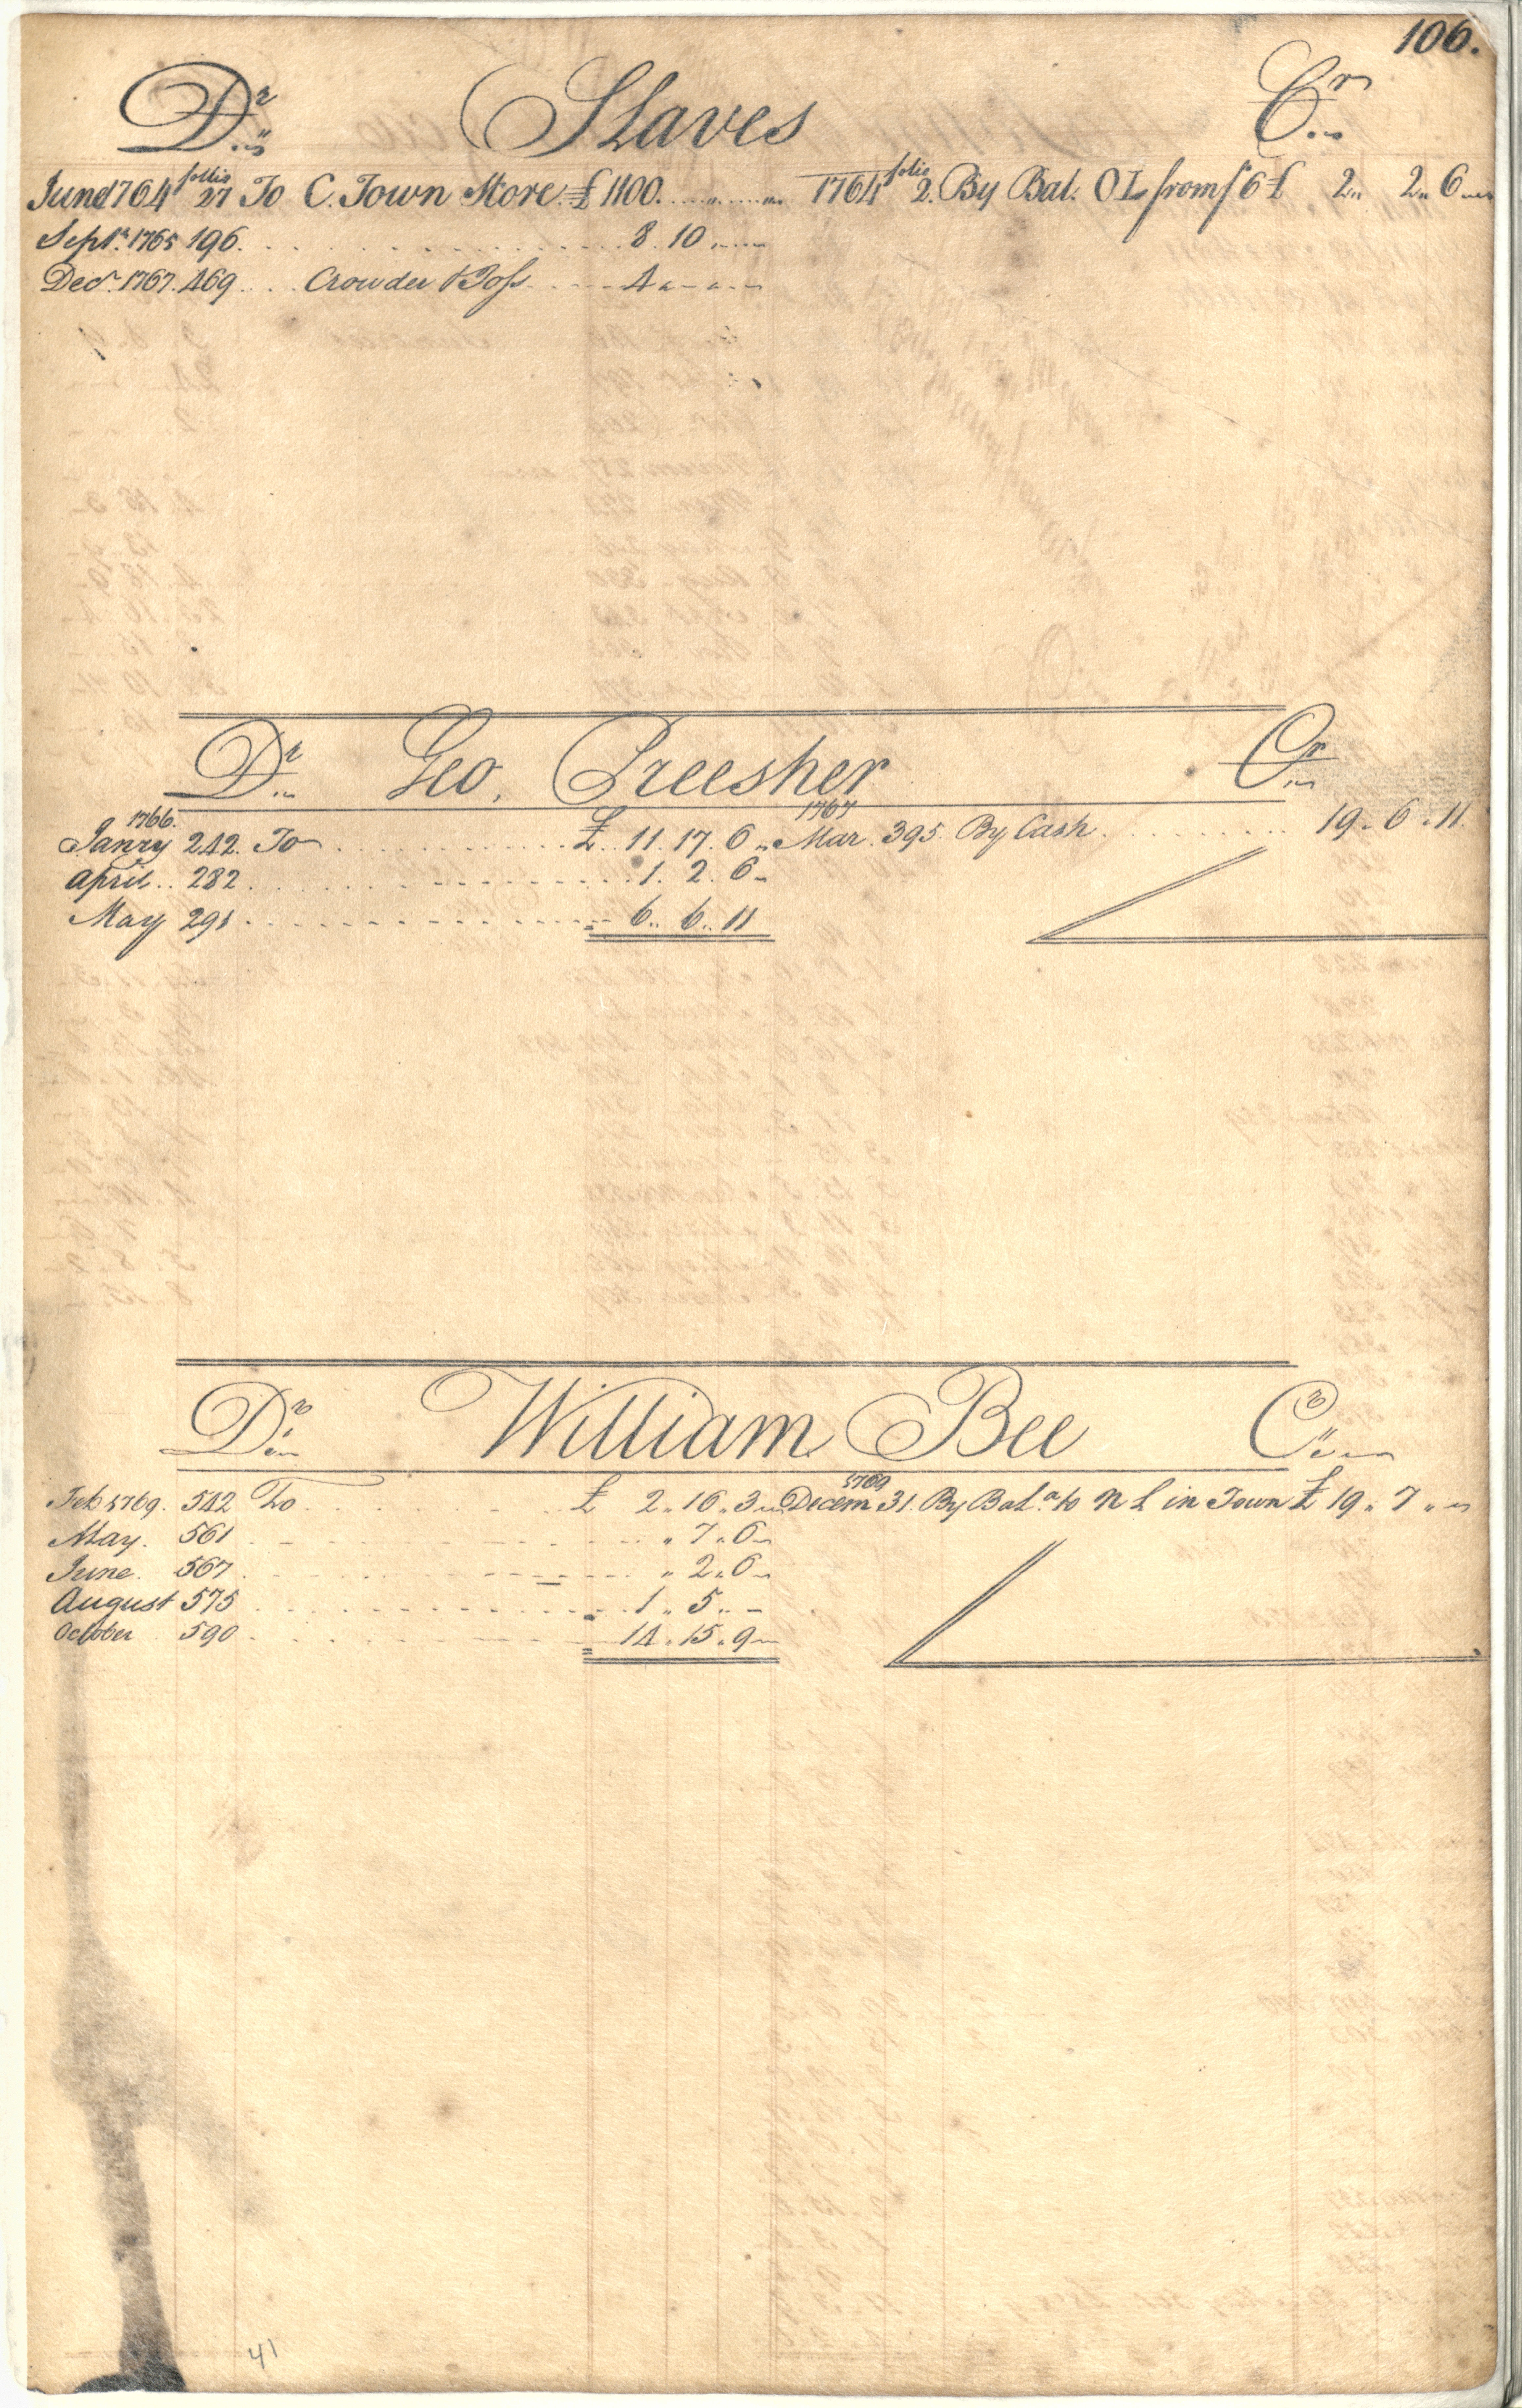 Plowden Weston's Business Ledger, page 106